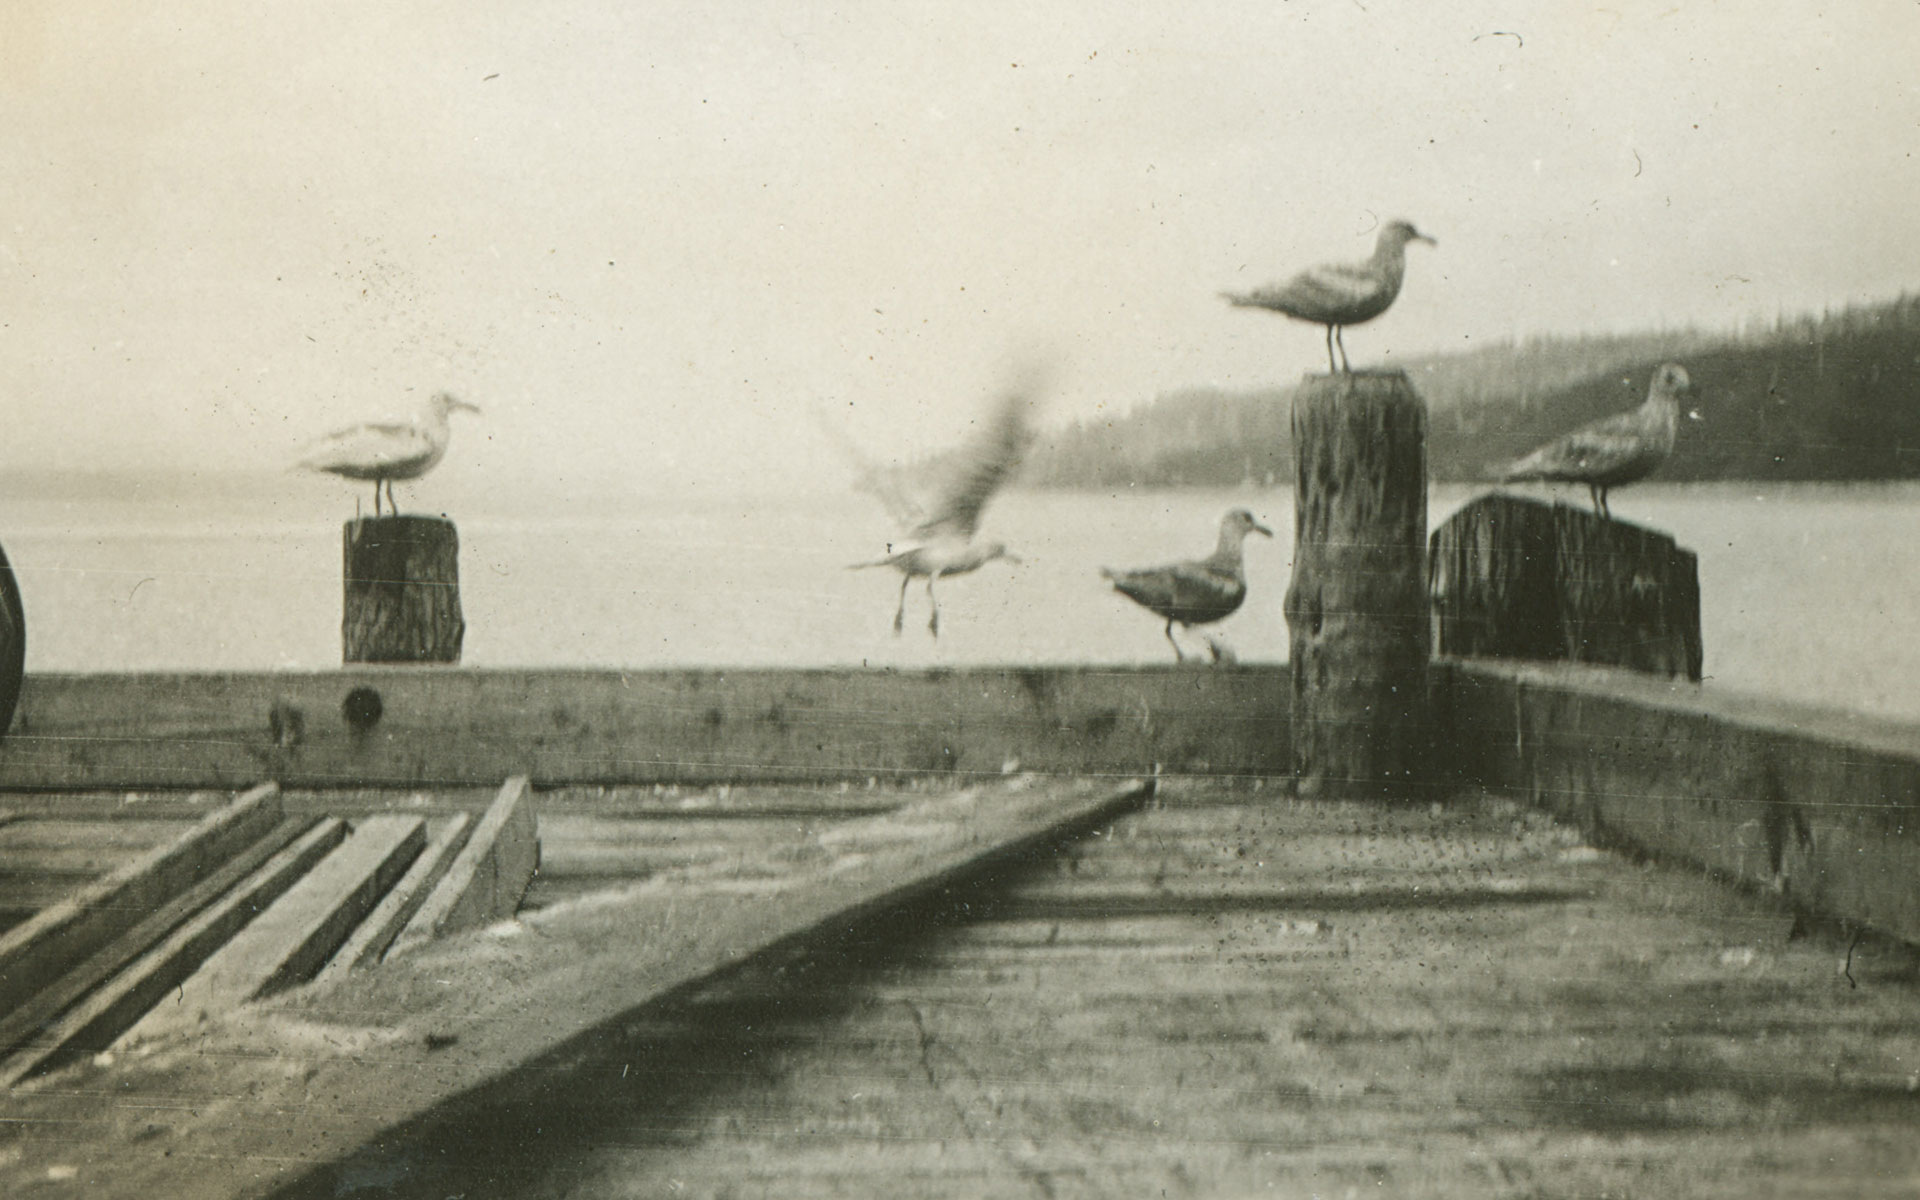 The end of a wooden dock with seagulls perched on the pilings